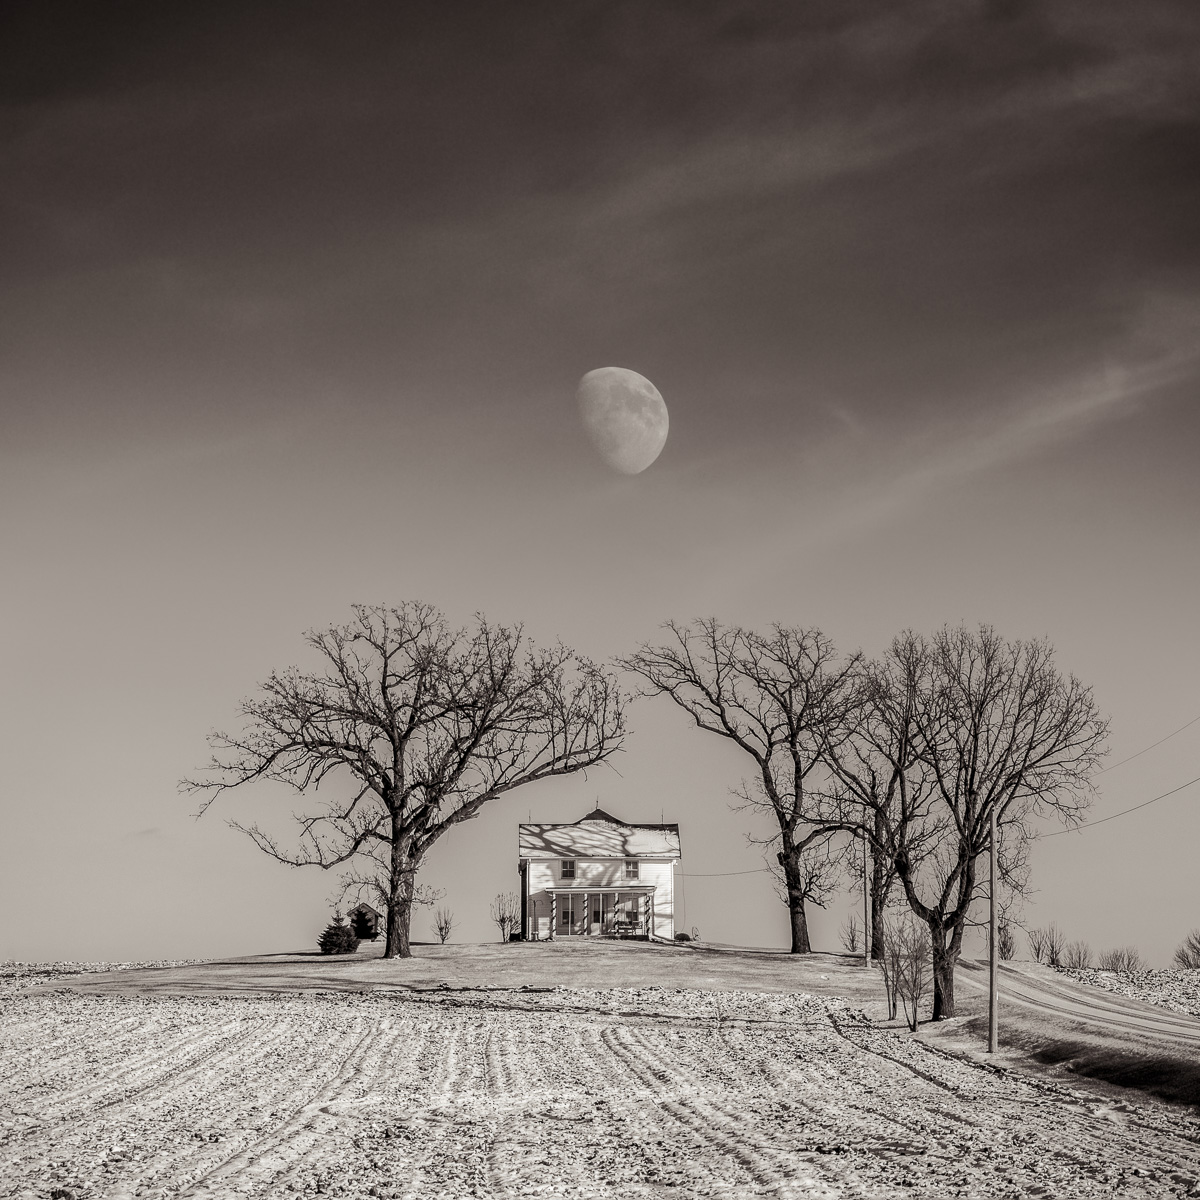 MichaelKnapstein_Winter_WinterMoon.jpg